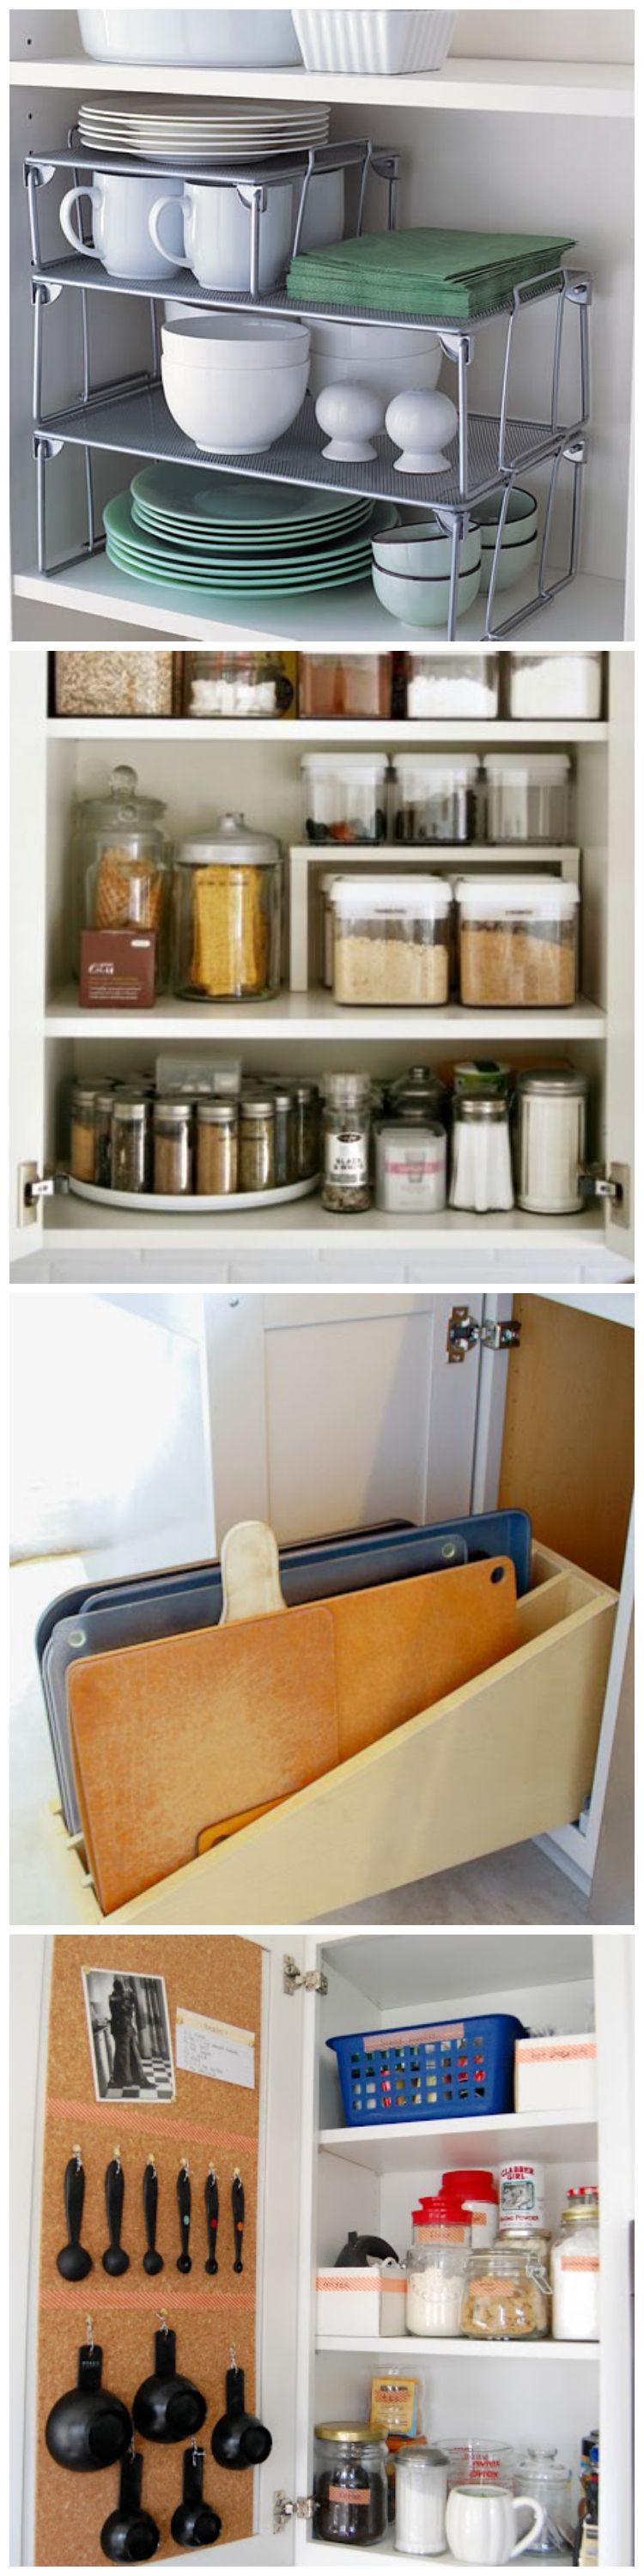 Kitchen Cabinet Organizer Ideas These Insanely Organized Cabinets Will Inspire Your Next Cleaning